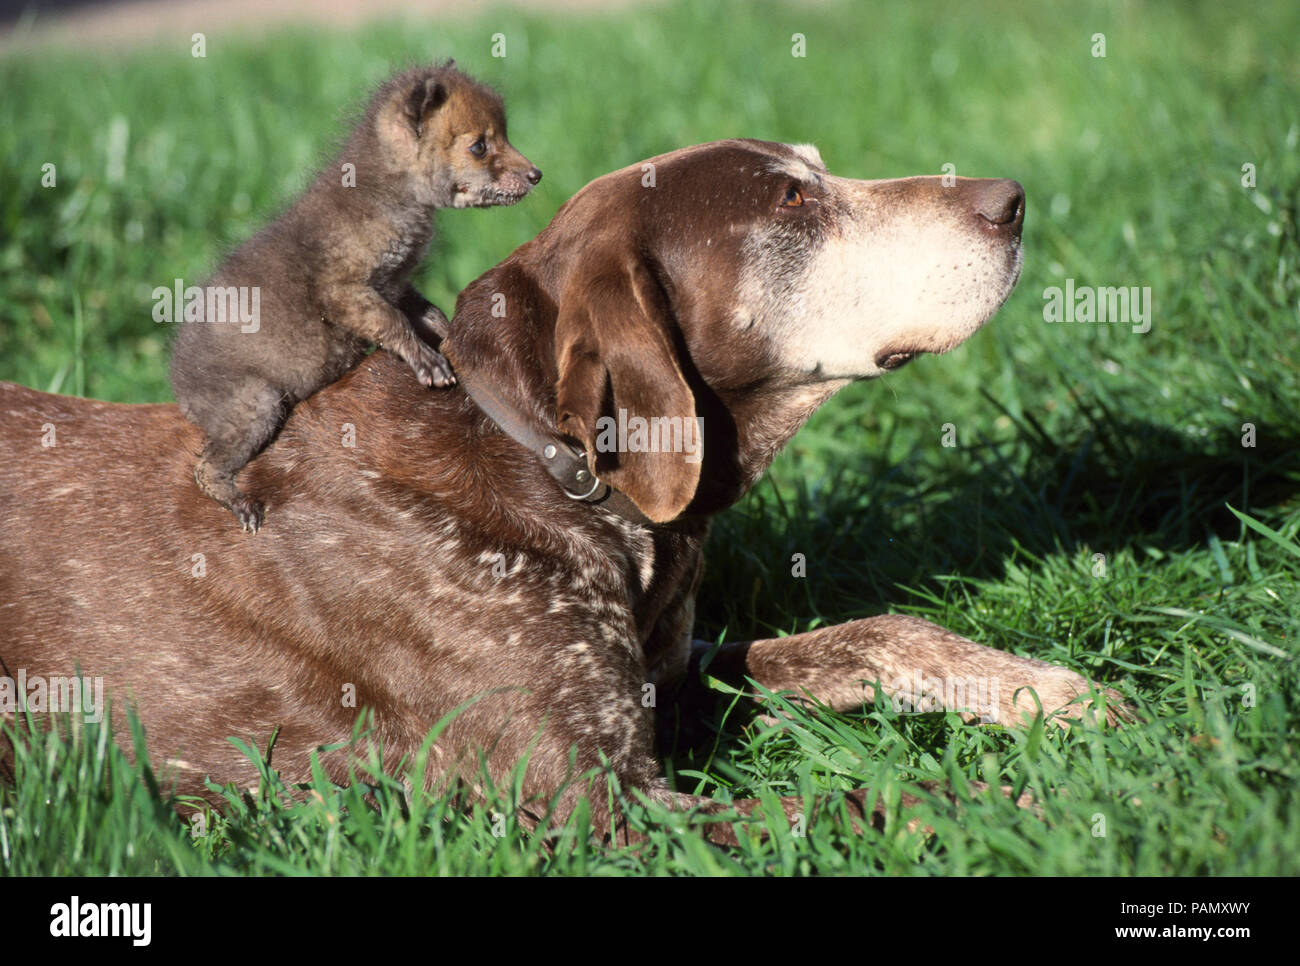 Animal friendship: German Shorthaired Pointer and young red fox (Vulpes vulpes) on a meadow. Germany - Stock Image